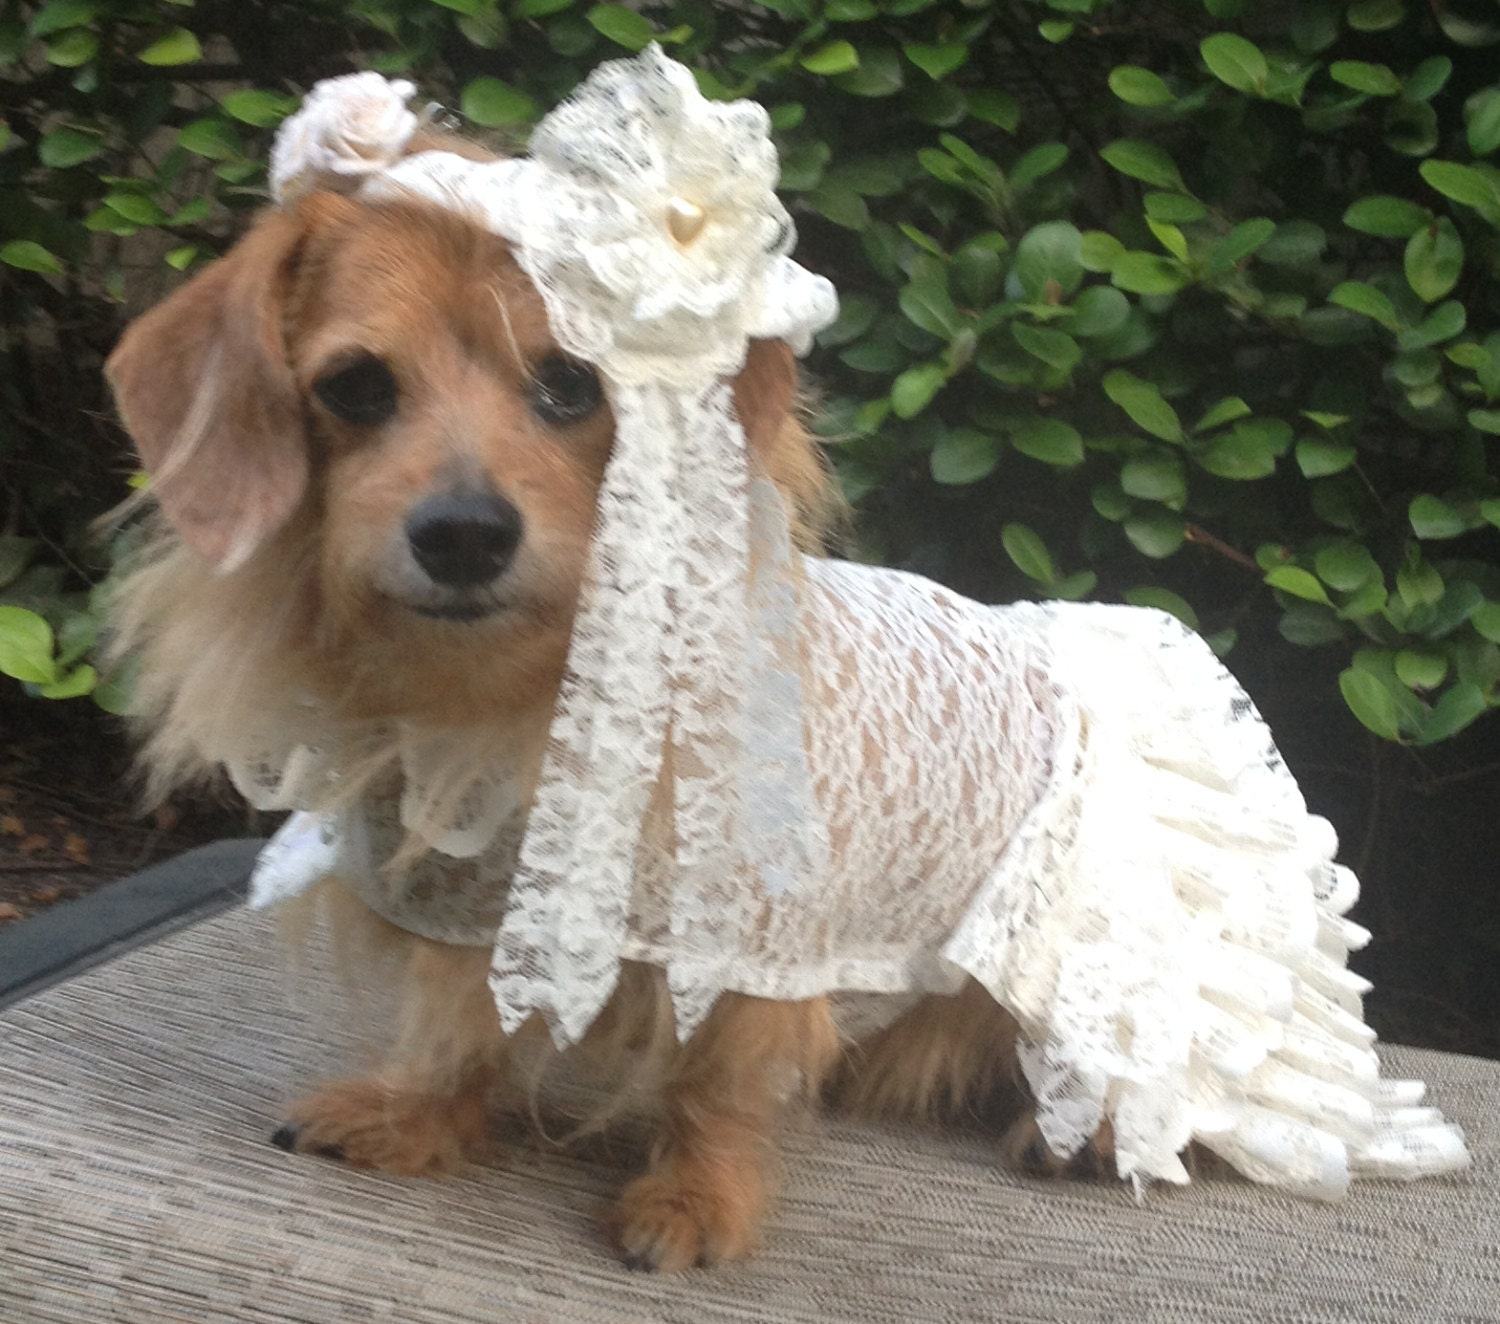 Emejing Wedding Outfits For Dogs Contemporary - Styles & Ideas 2018 ...